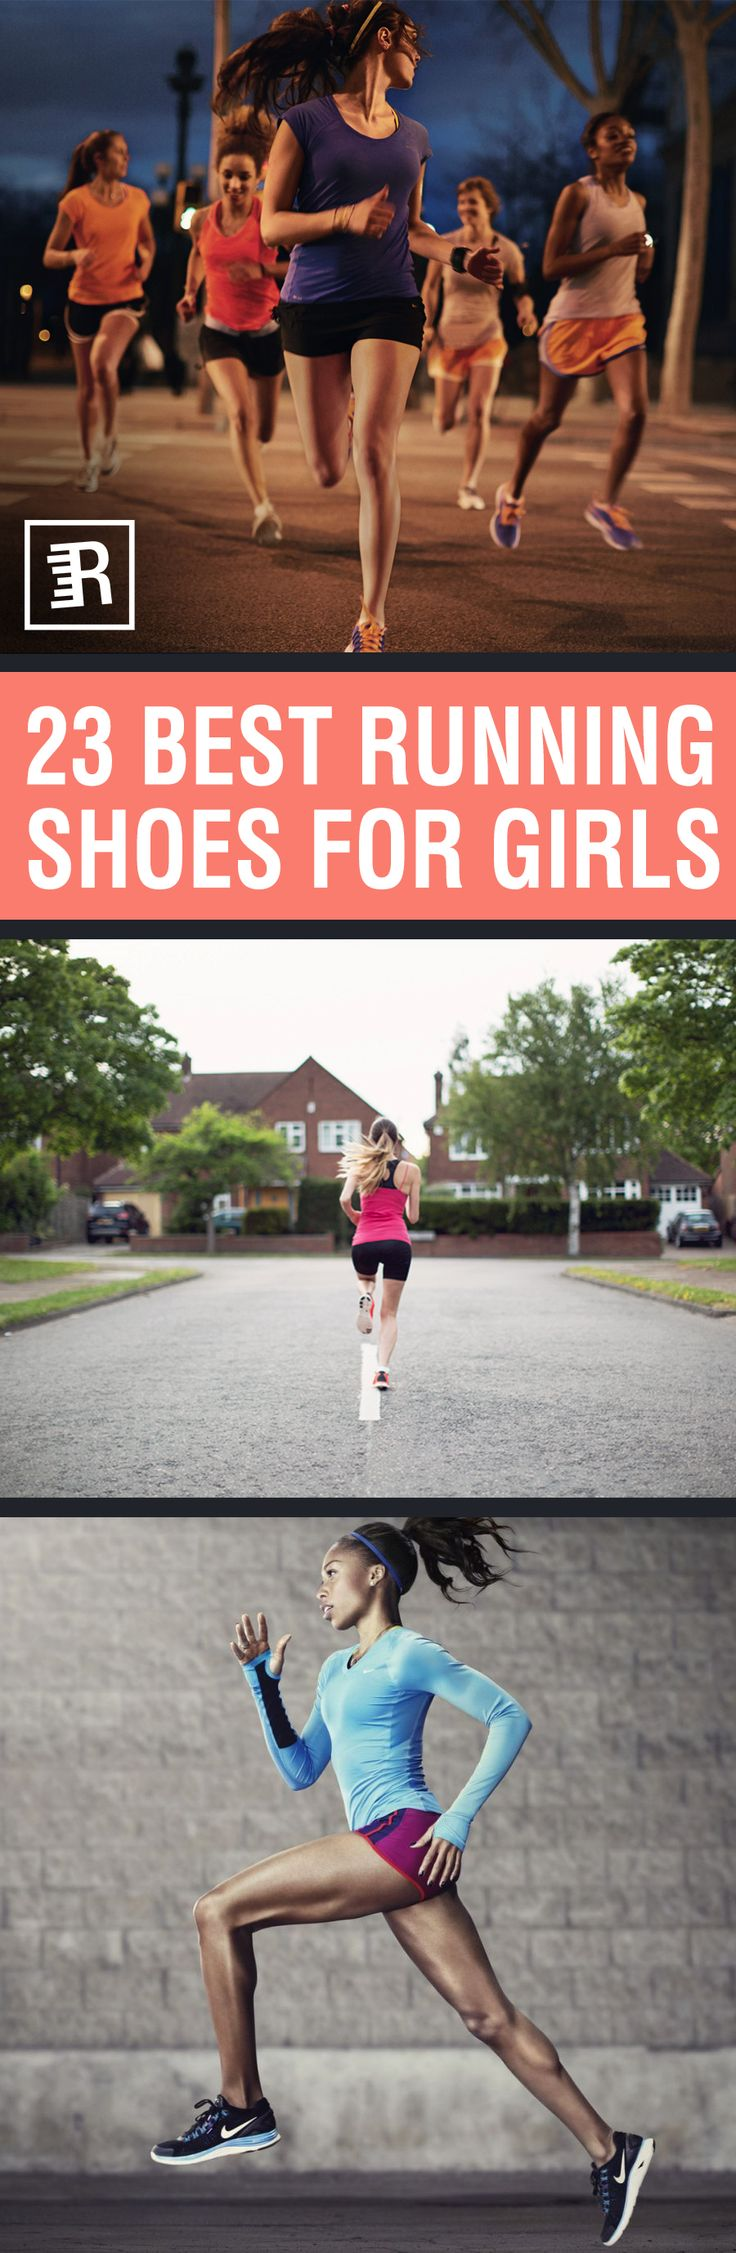 Finding a decent pair of girl's running shoes may be harder than you thought. Do you find yourself scanning online endlessly just overwhelmed by the amount of choice? This article is here to help as we will be 23 of the best running trainers for girls that can be easily found online.